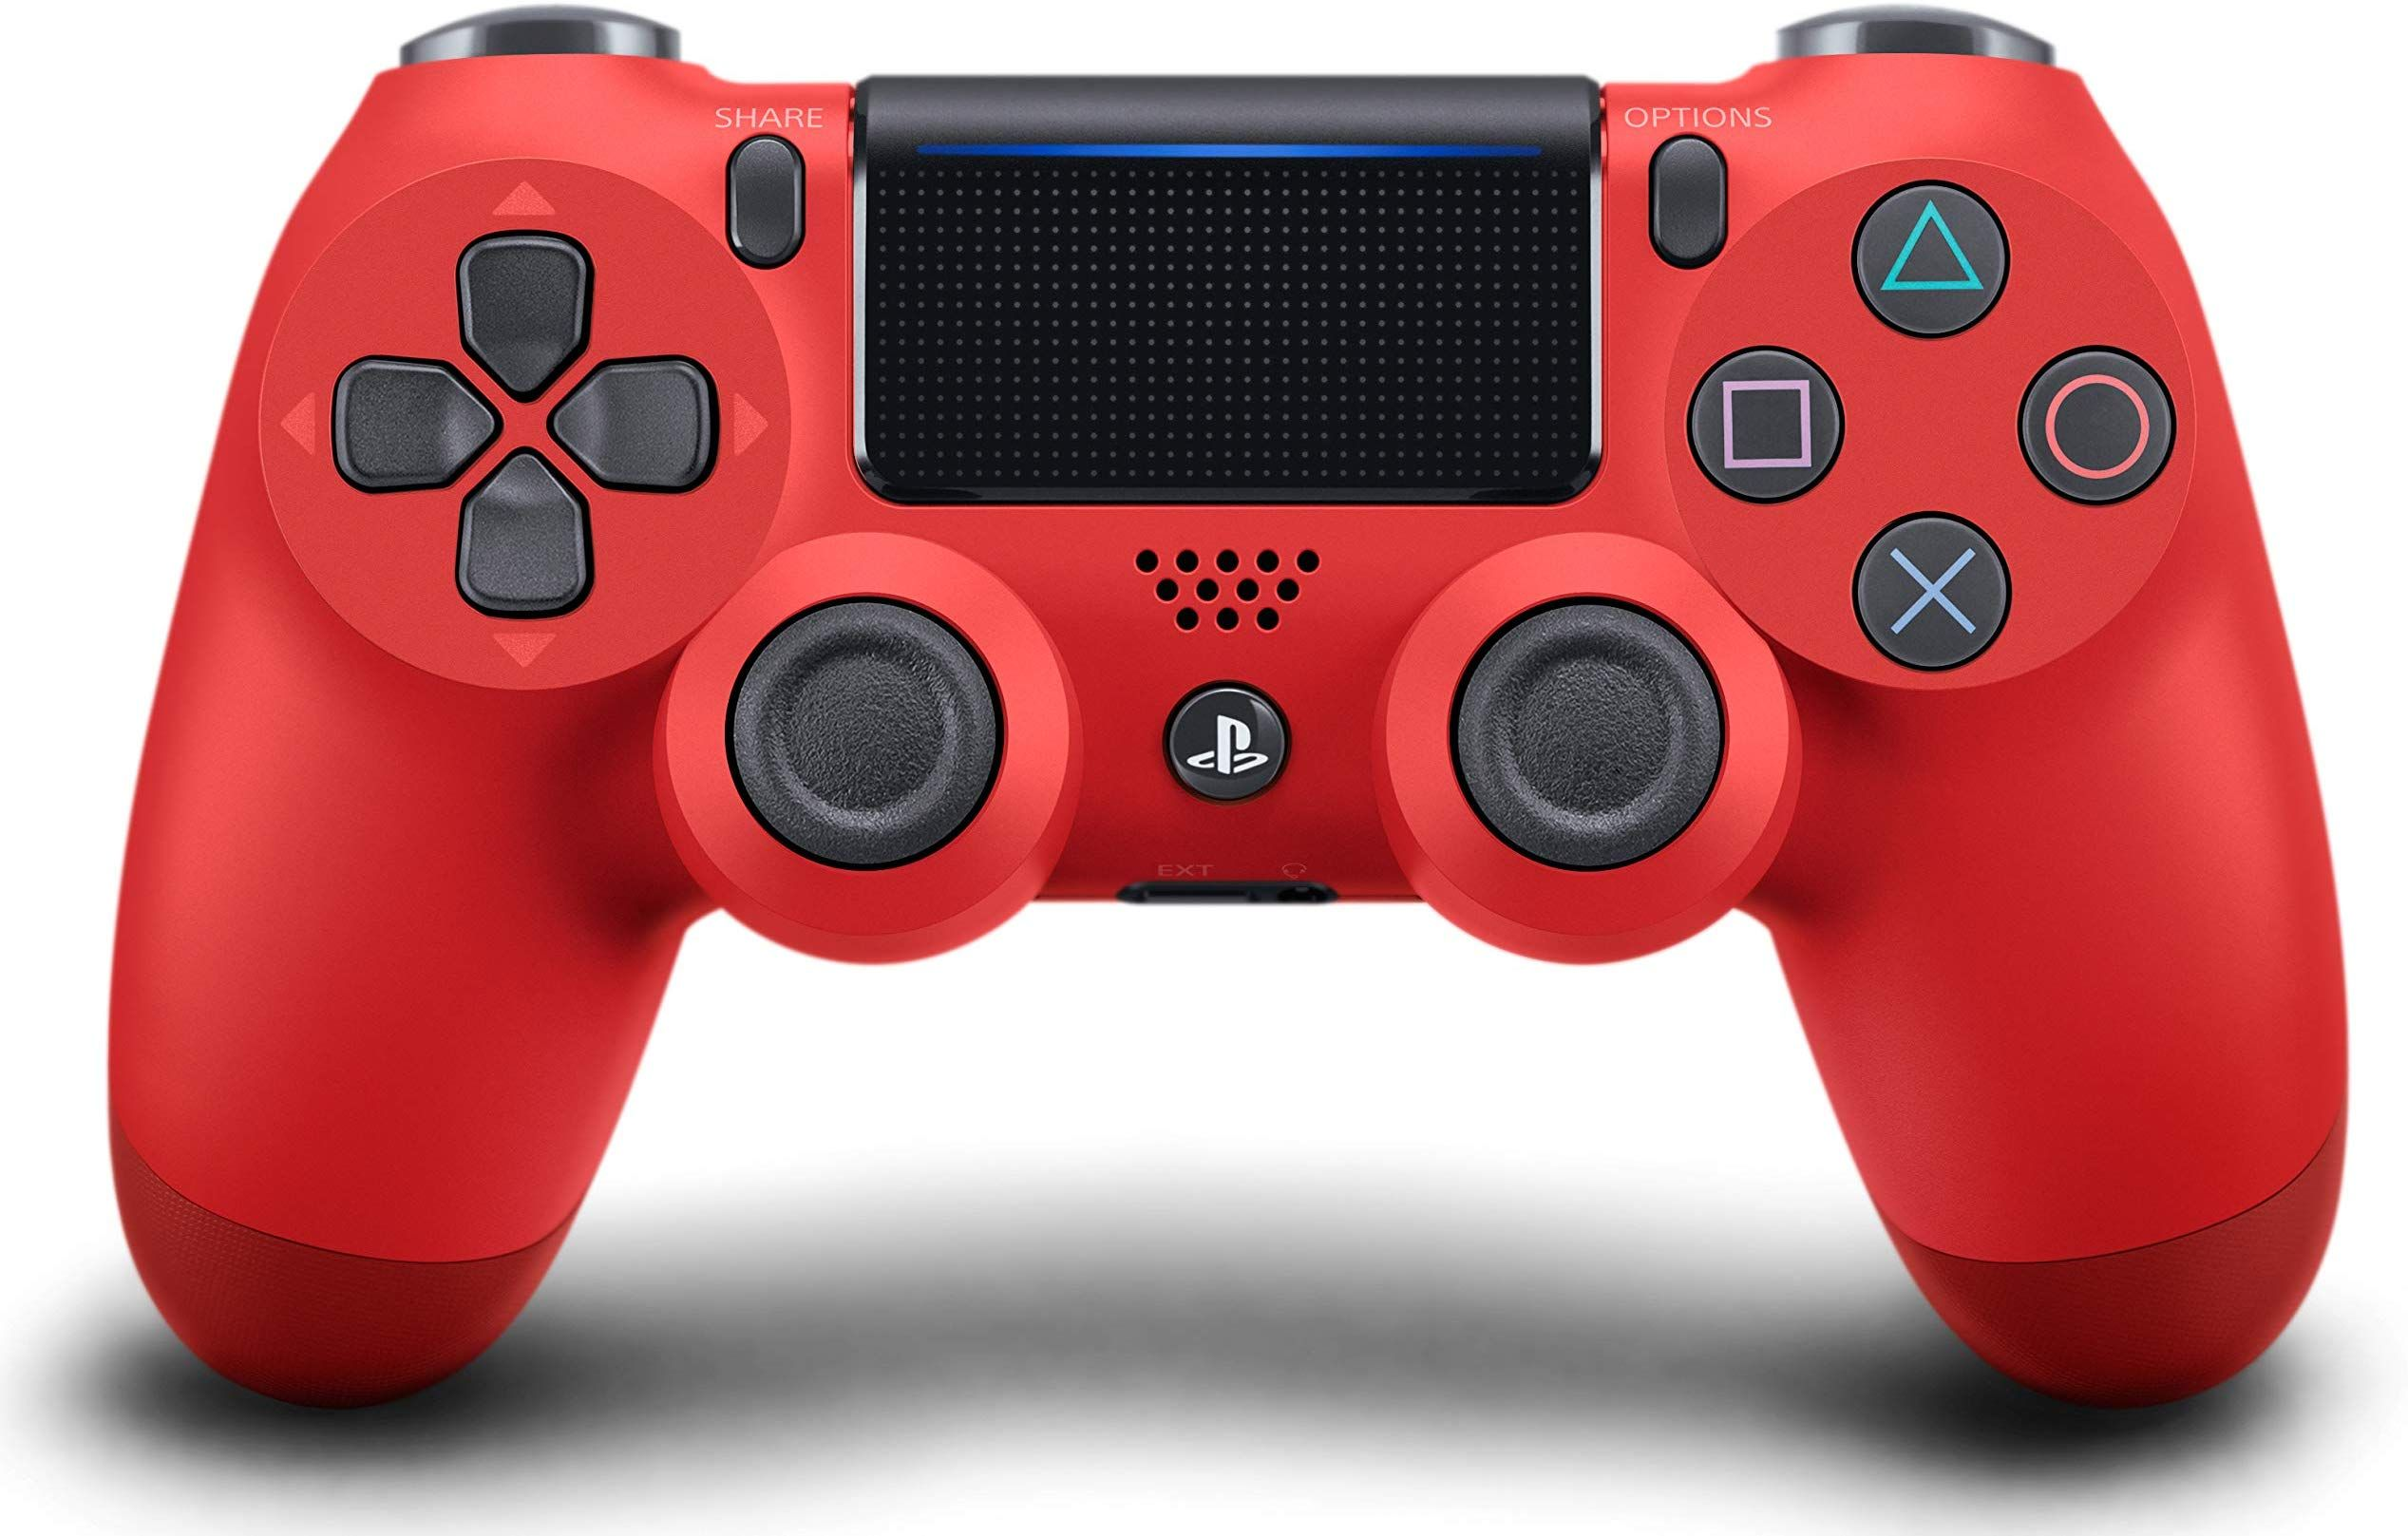 DualShock 4 Wireless Controller for